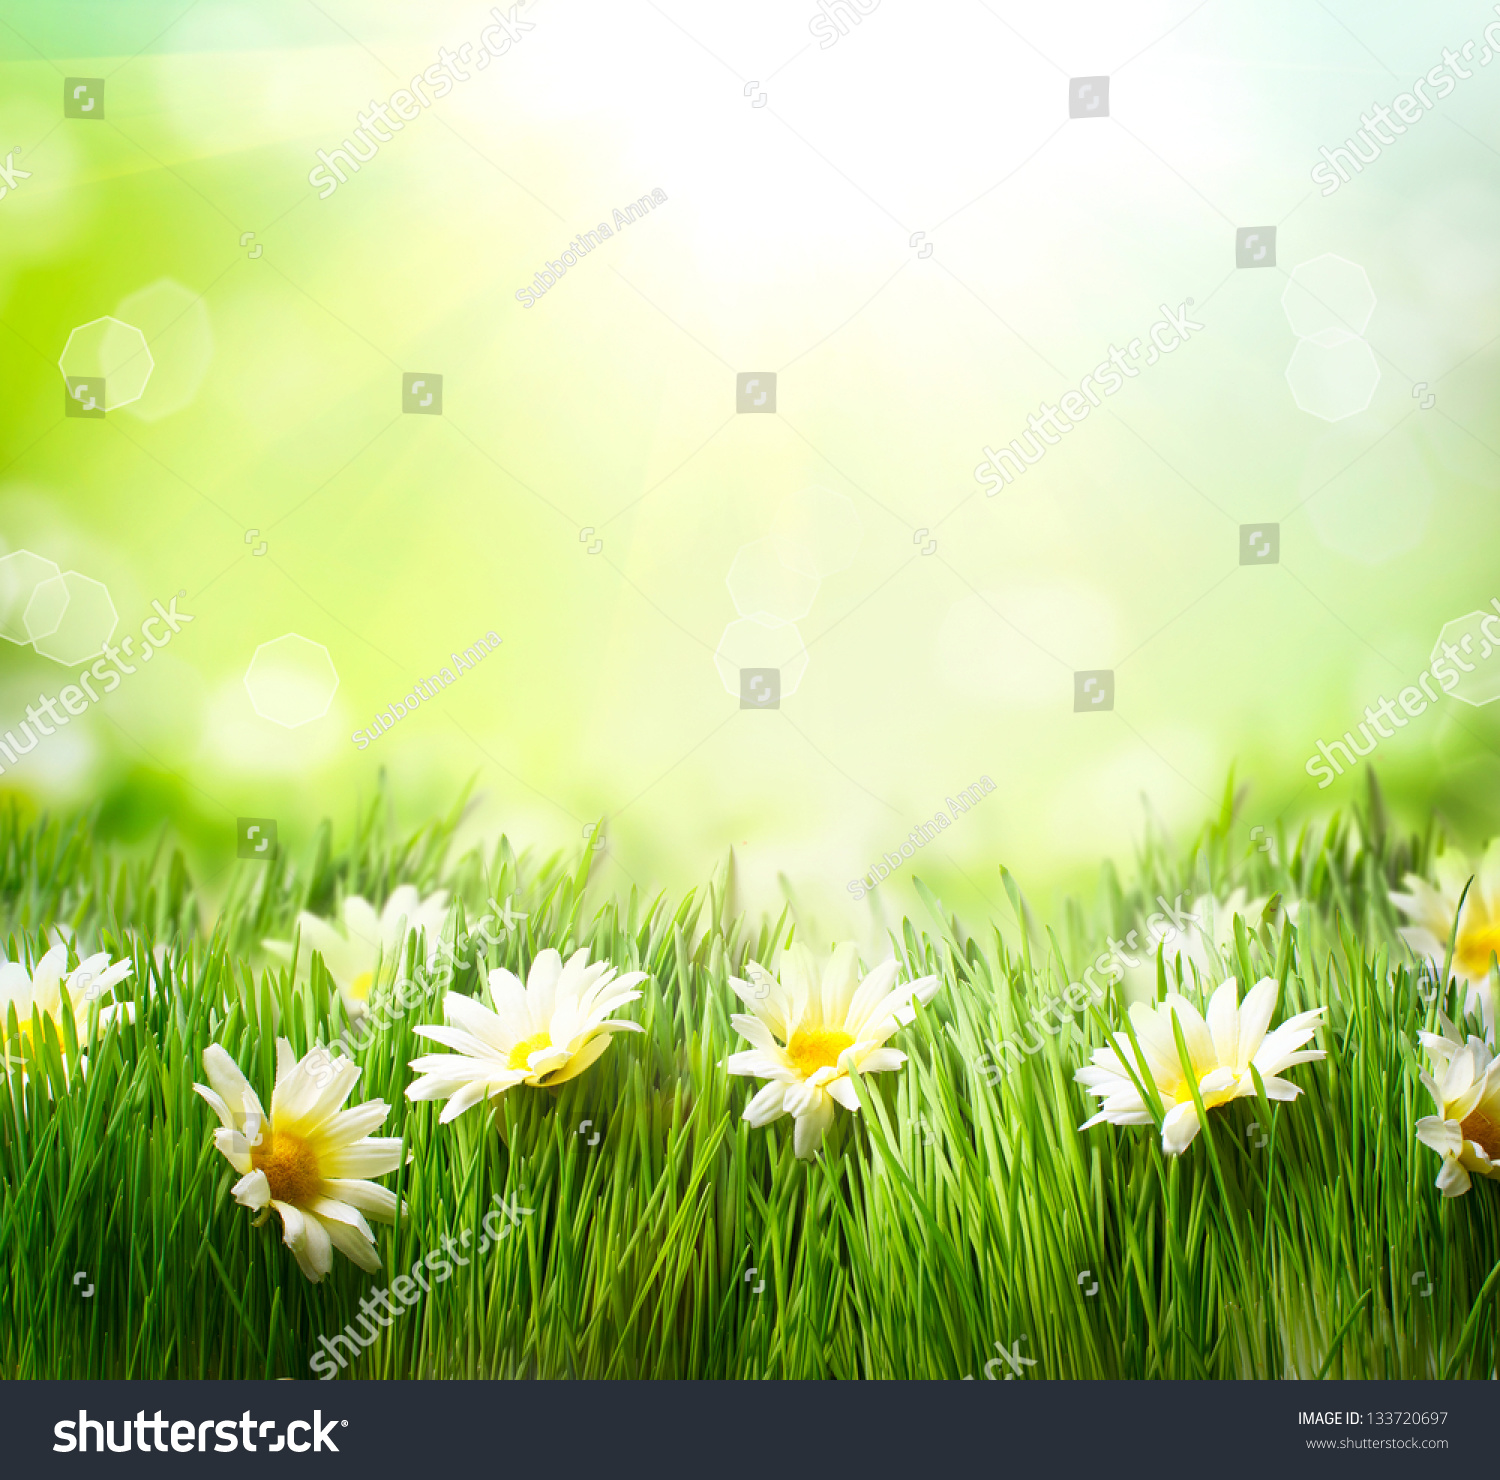 Spring Meadow Daisies Grass Flowers Border Stock Photo